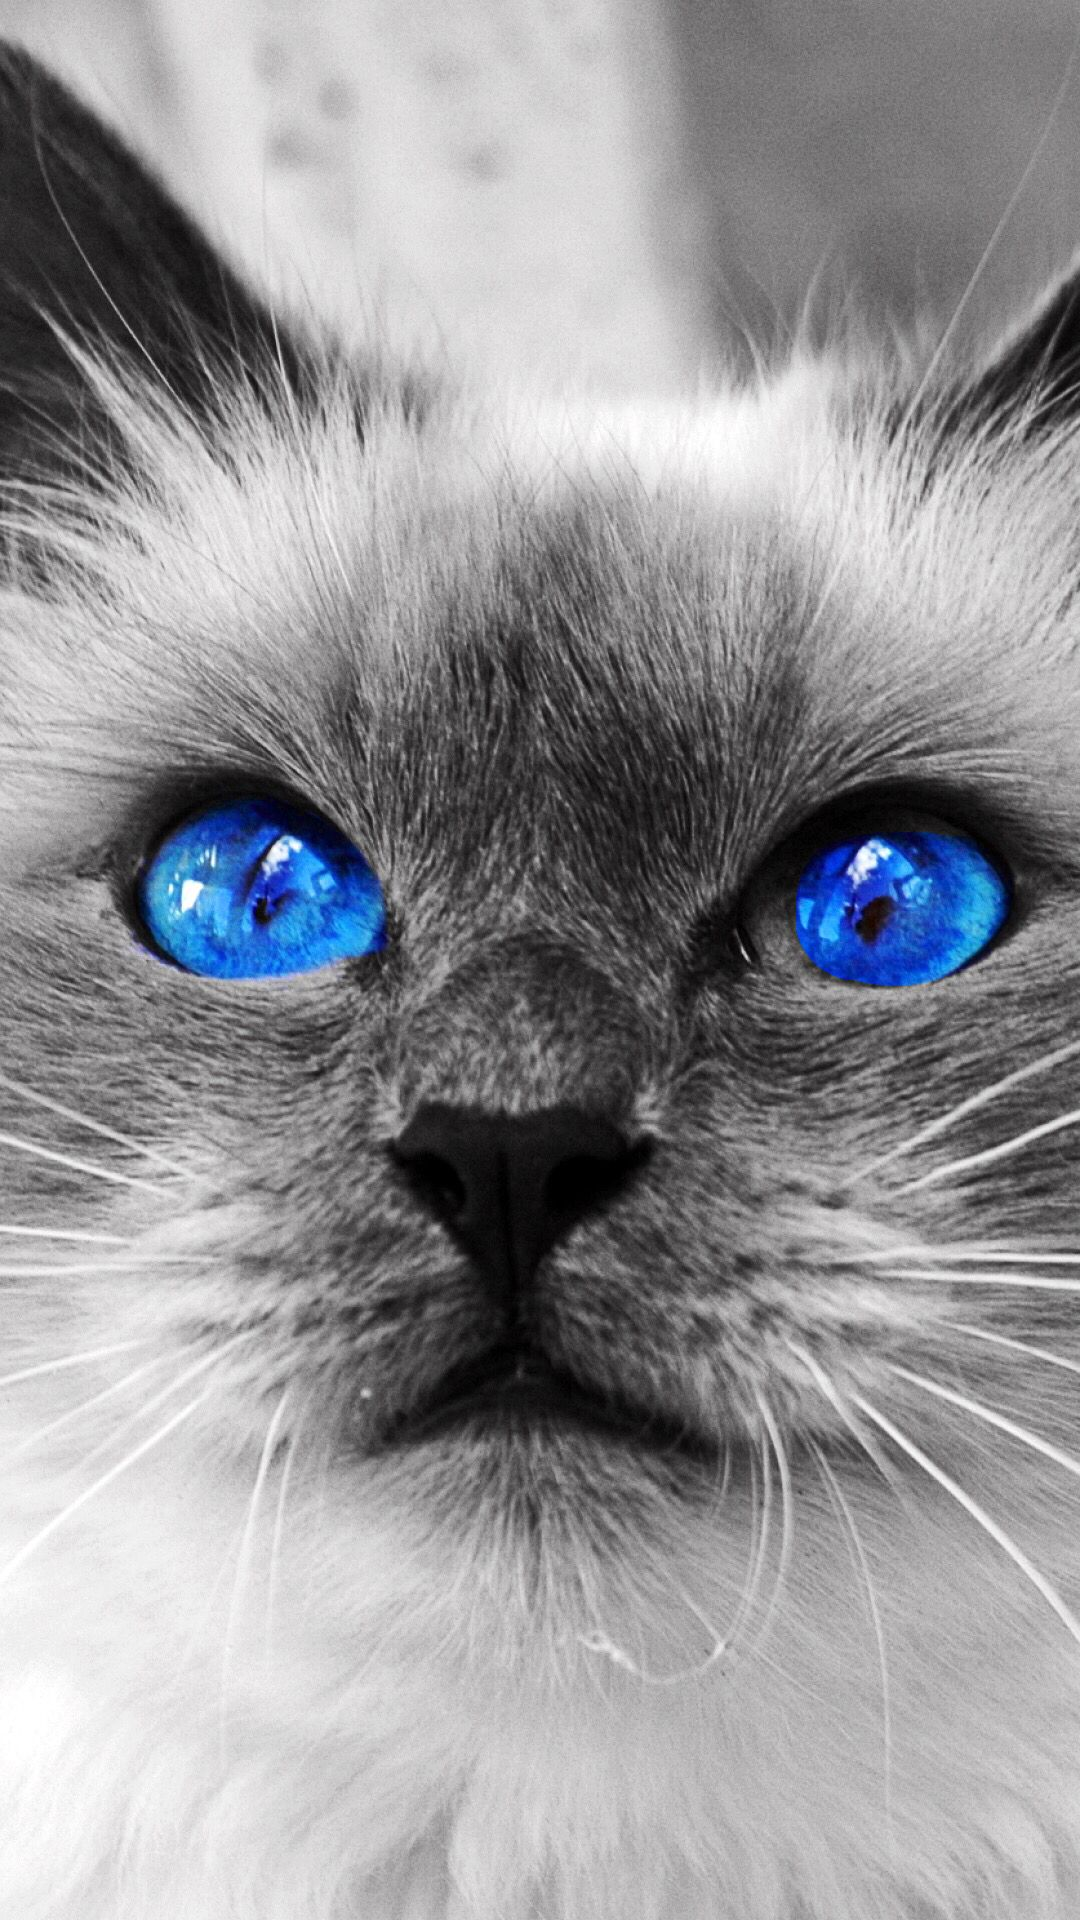 Ⓢarah Ⓐnne (With images) Beautiful cats, Cute animals